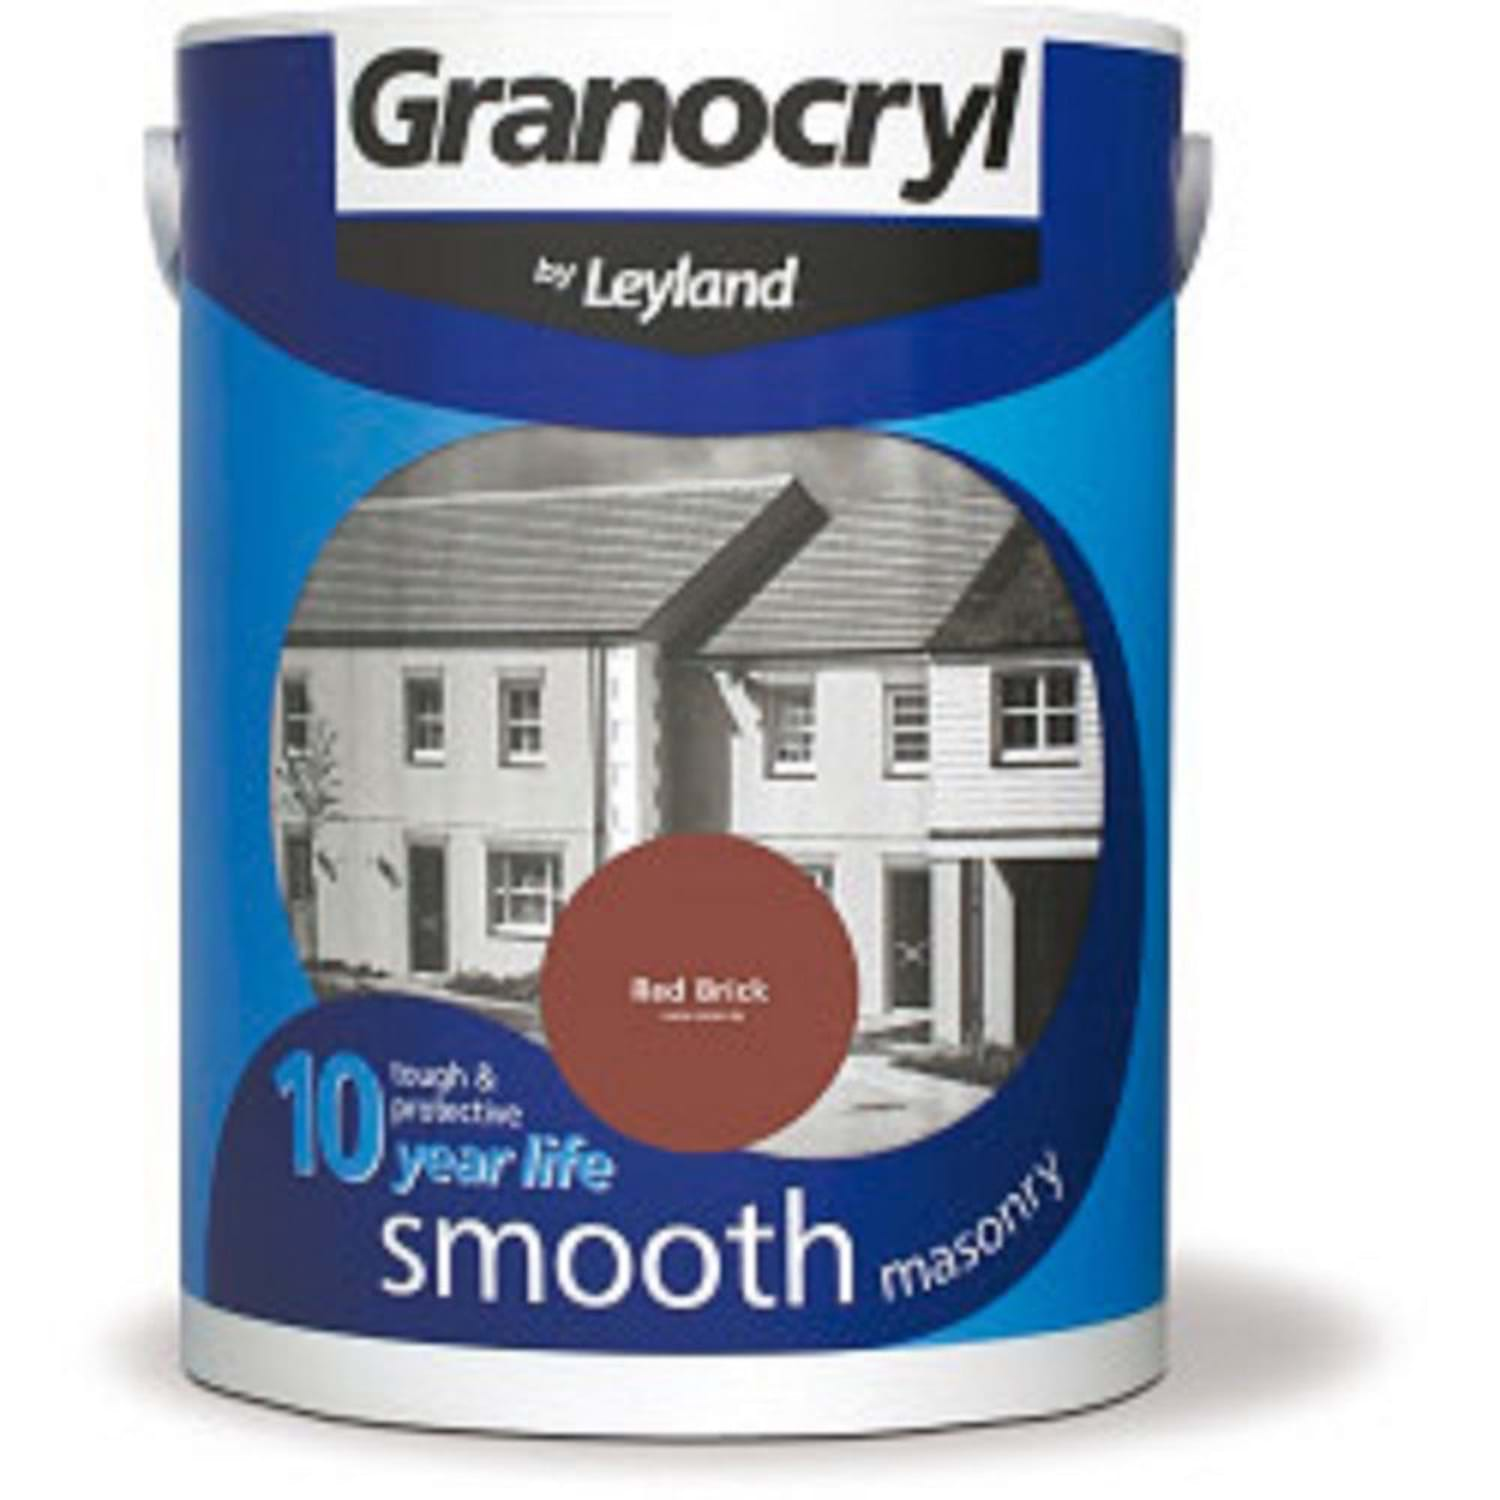 Image of Granocryl 5L Smooth Masonry Paint, Red Brick